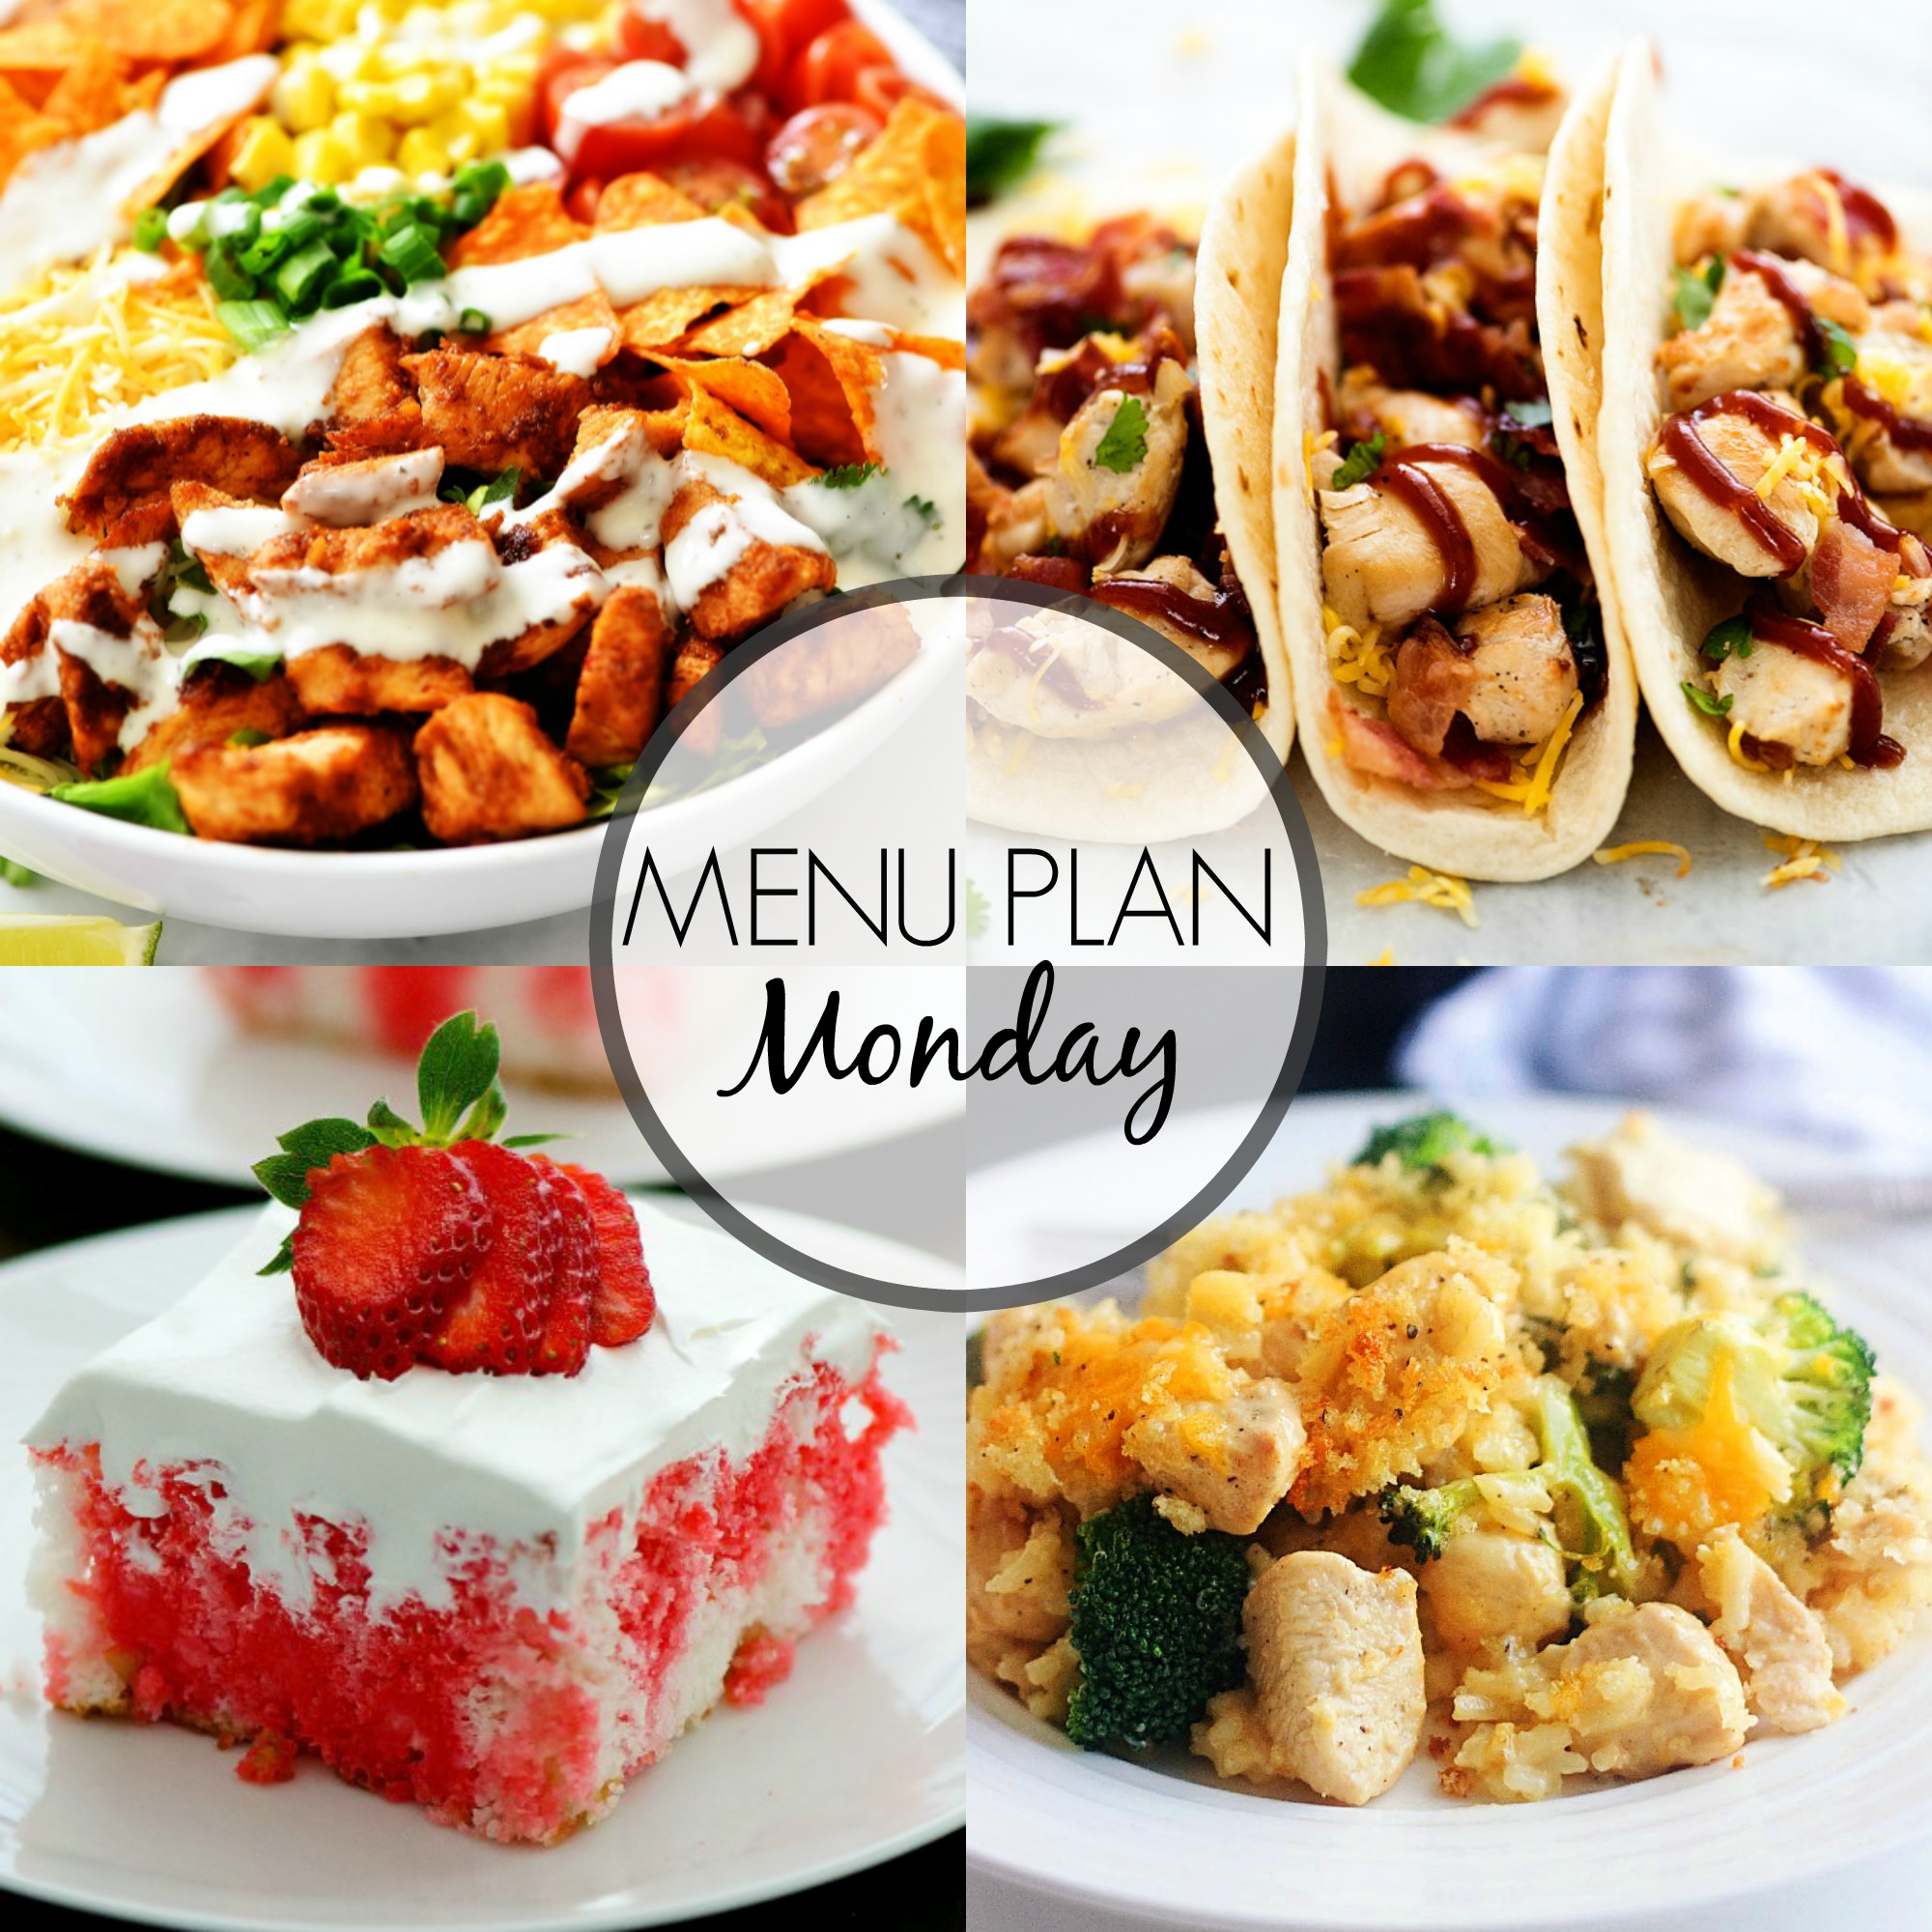 Menu Plan Monday is filled with easy and delicious recipes your family will love!